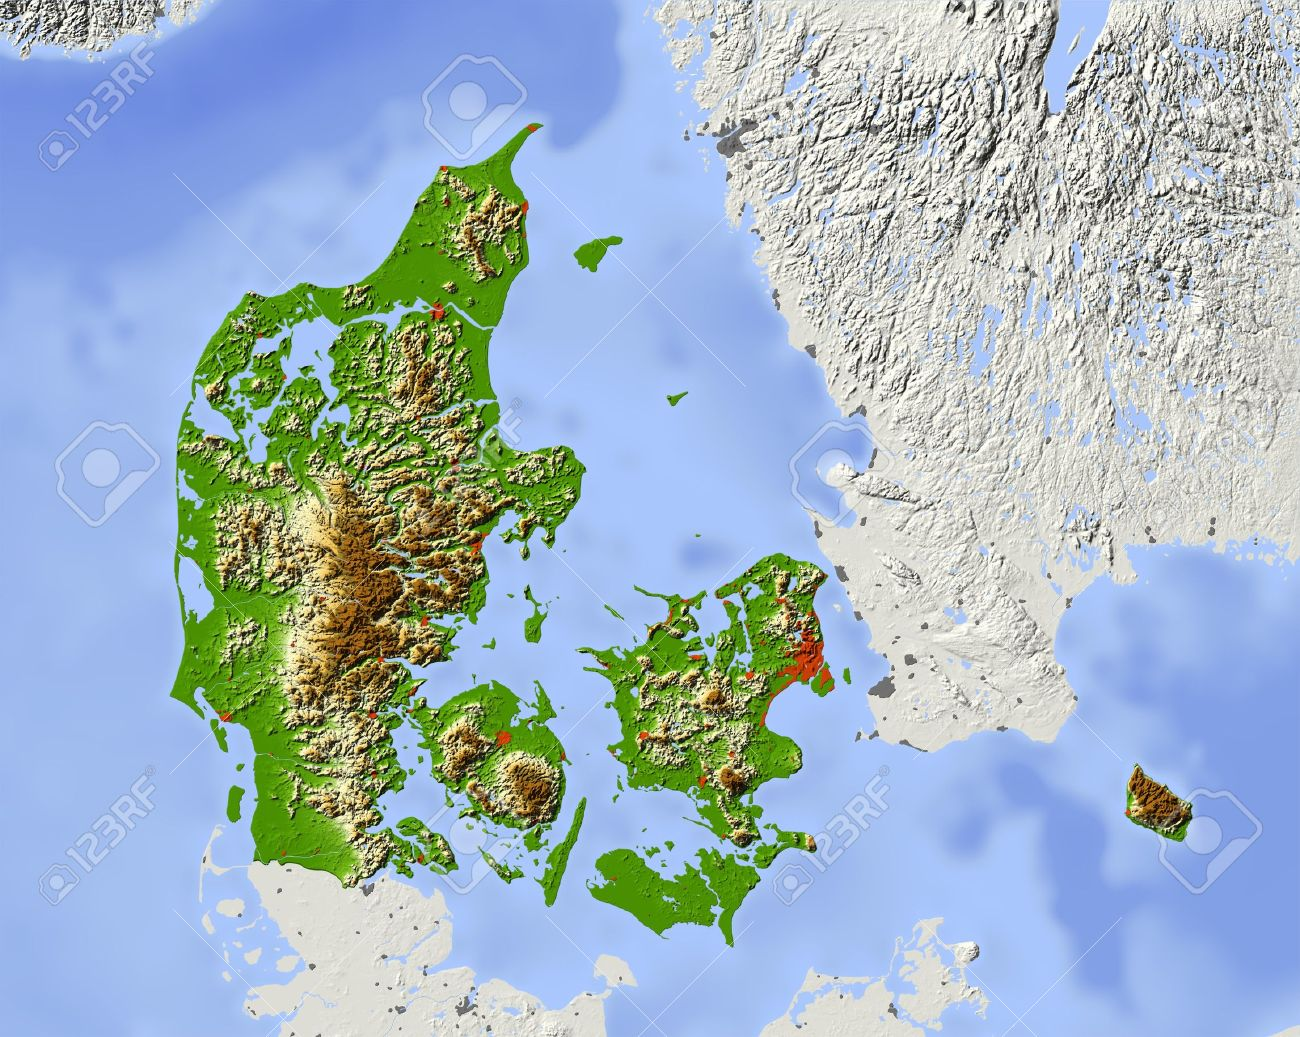 Shaded Relief map Of Denmark [1300*1037] : Map on